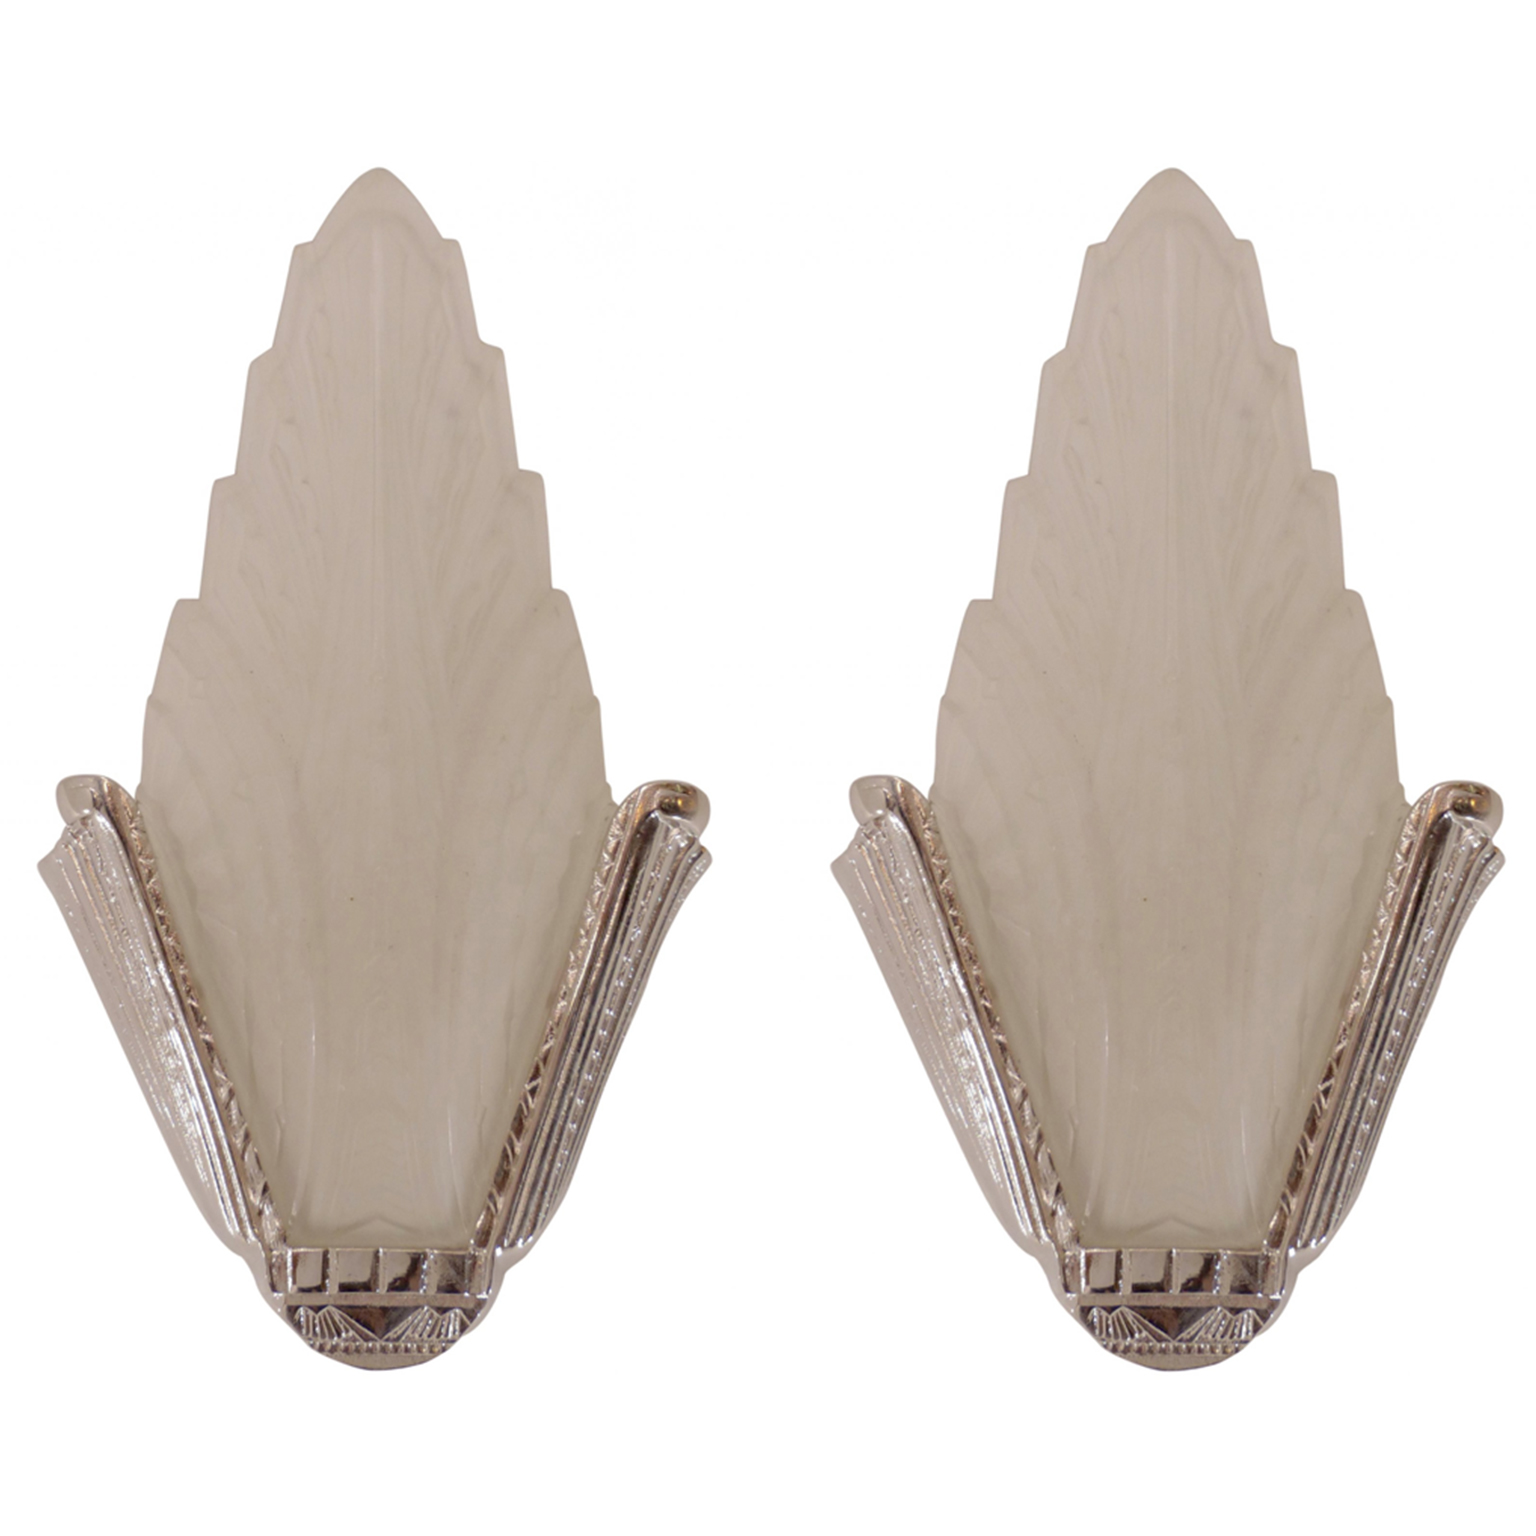 Art Deco Sconces in frosted glass and nickel.